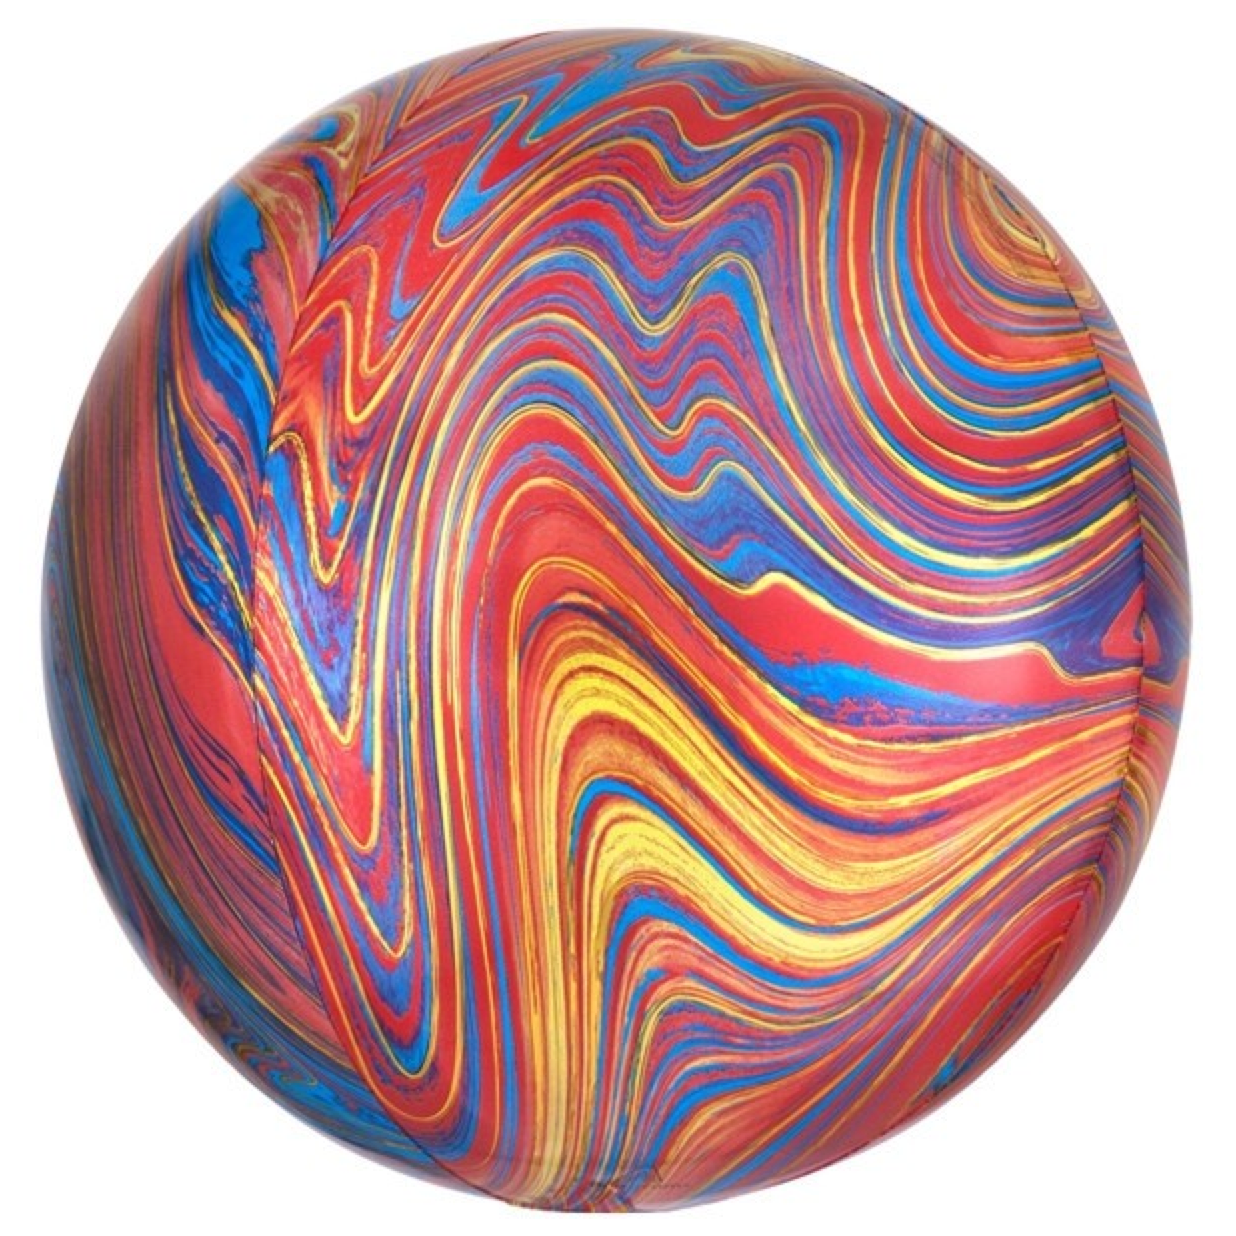 HH Orbz marble colorful foil balloon 38 x 40 cm